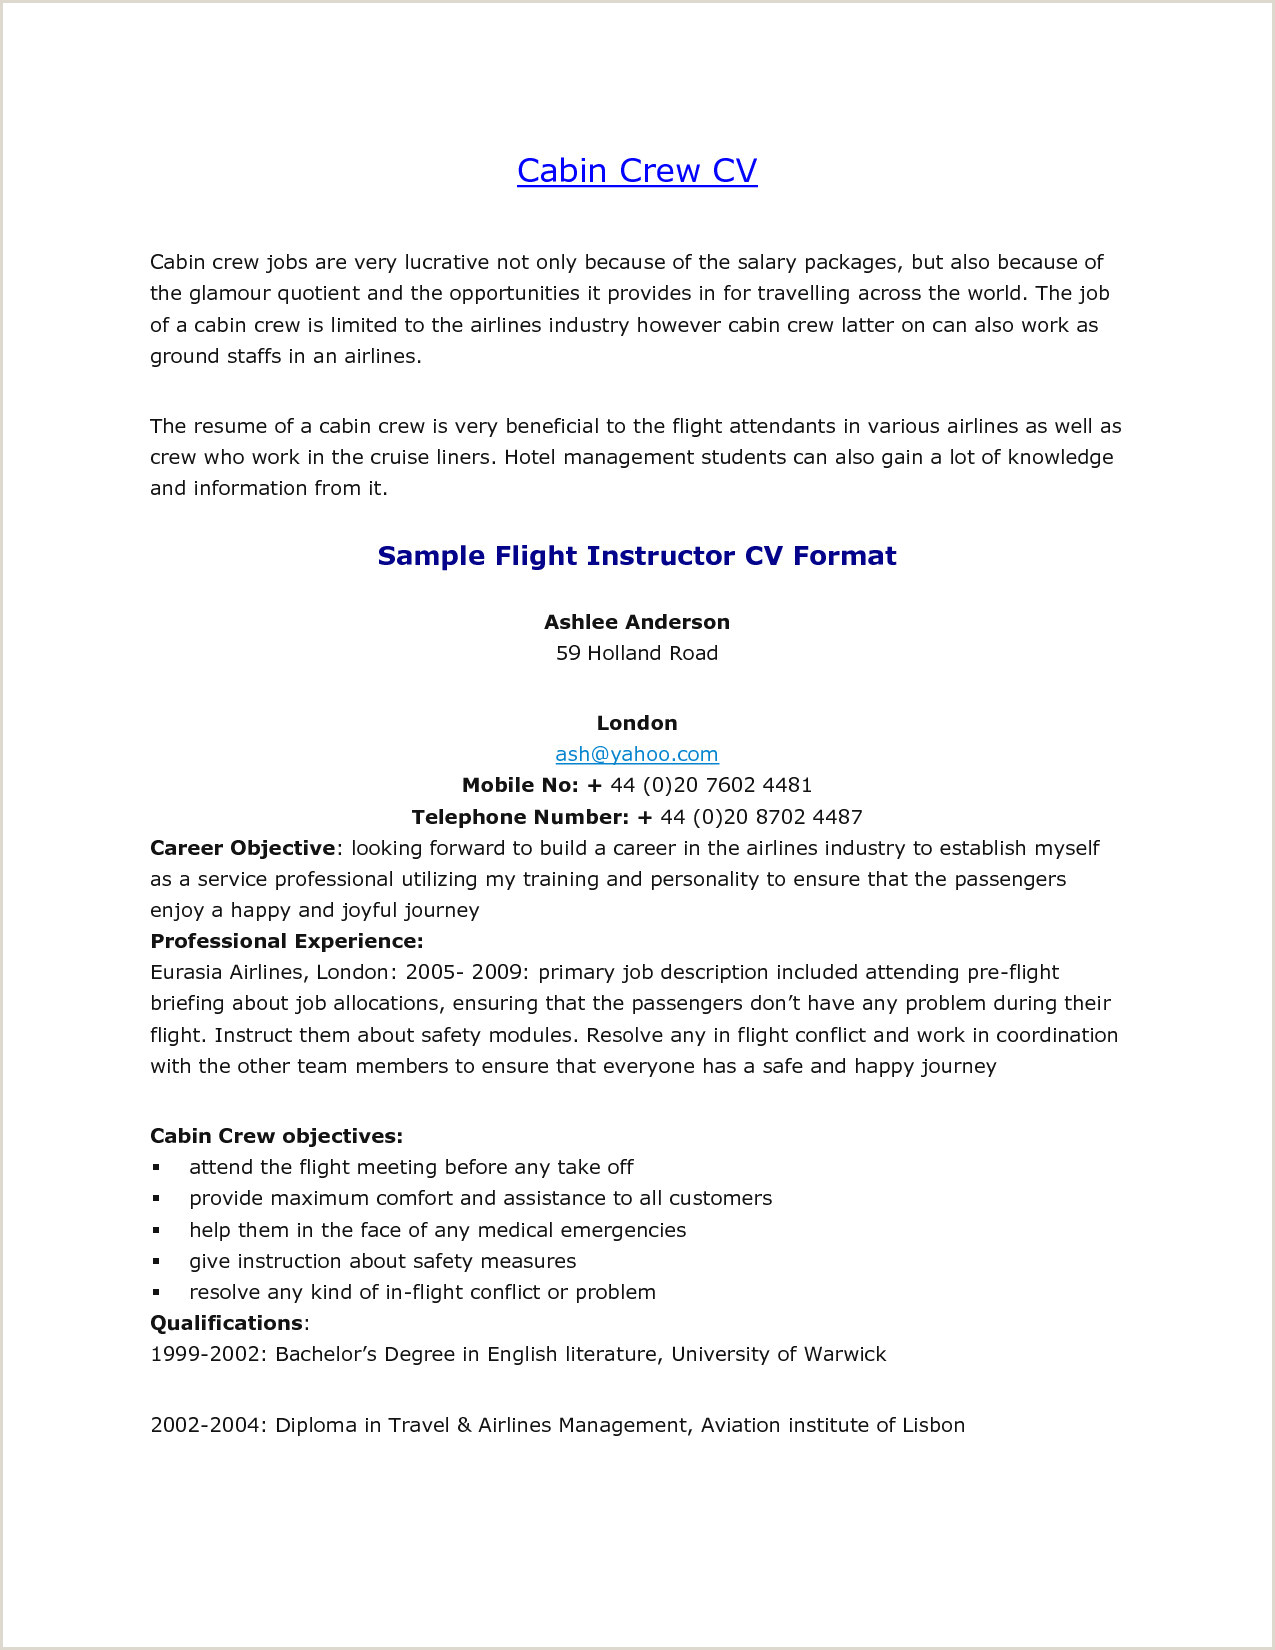 Fresher Resume format for Cabin Crew 29 Resume format for Airlines Ground Staff